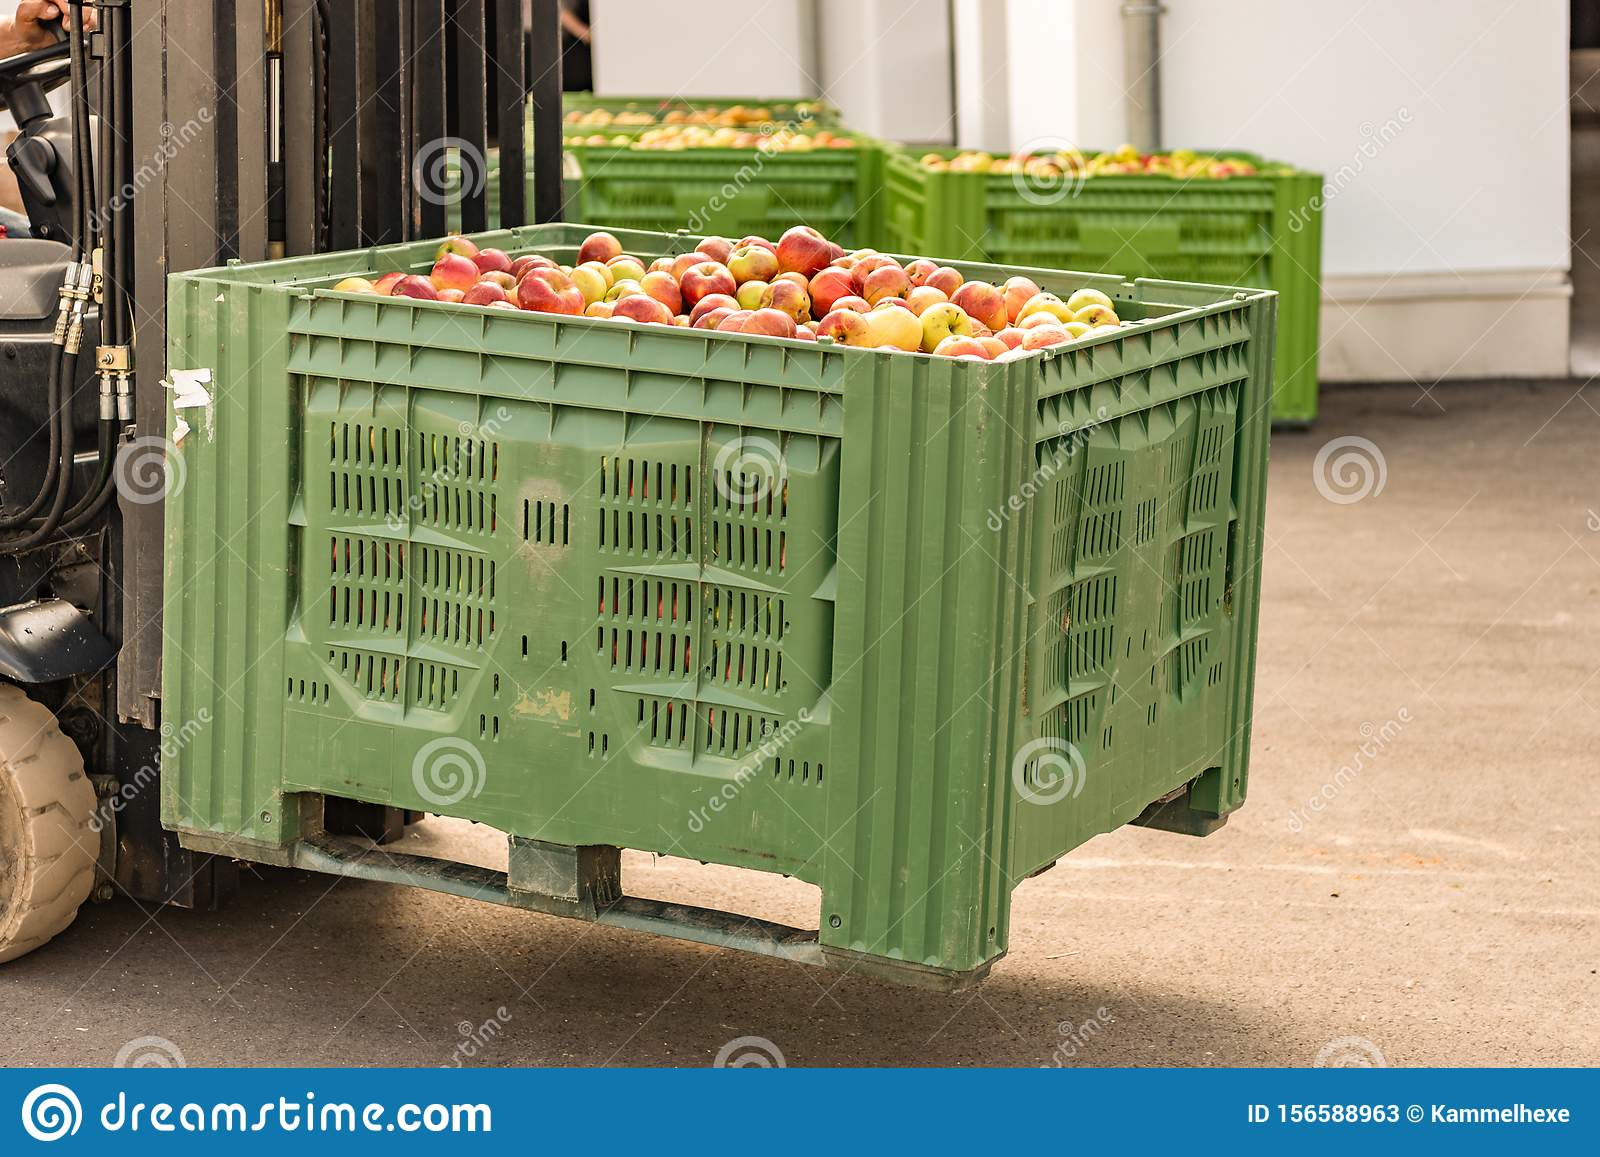 Forklift carries crates of fruit. Many apples in container